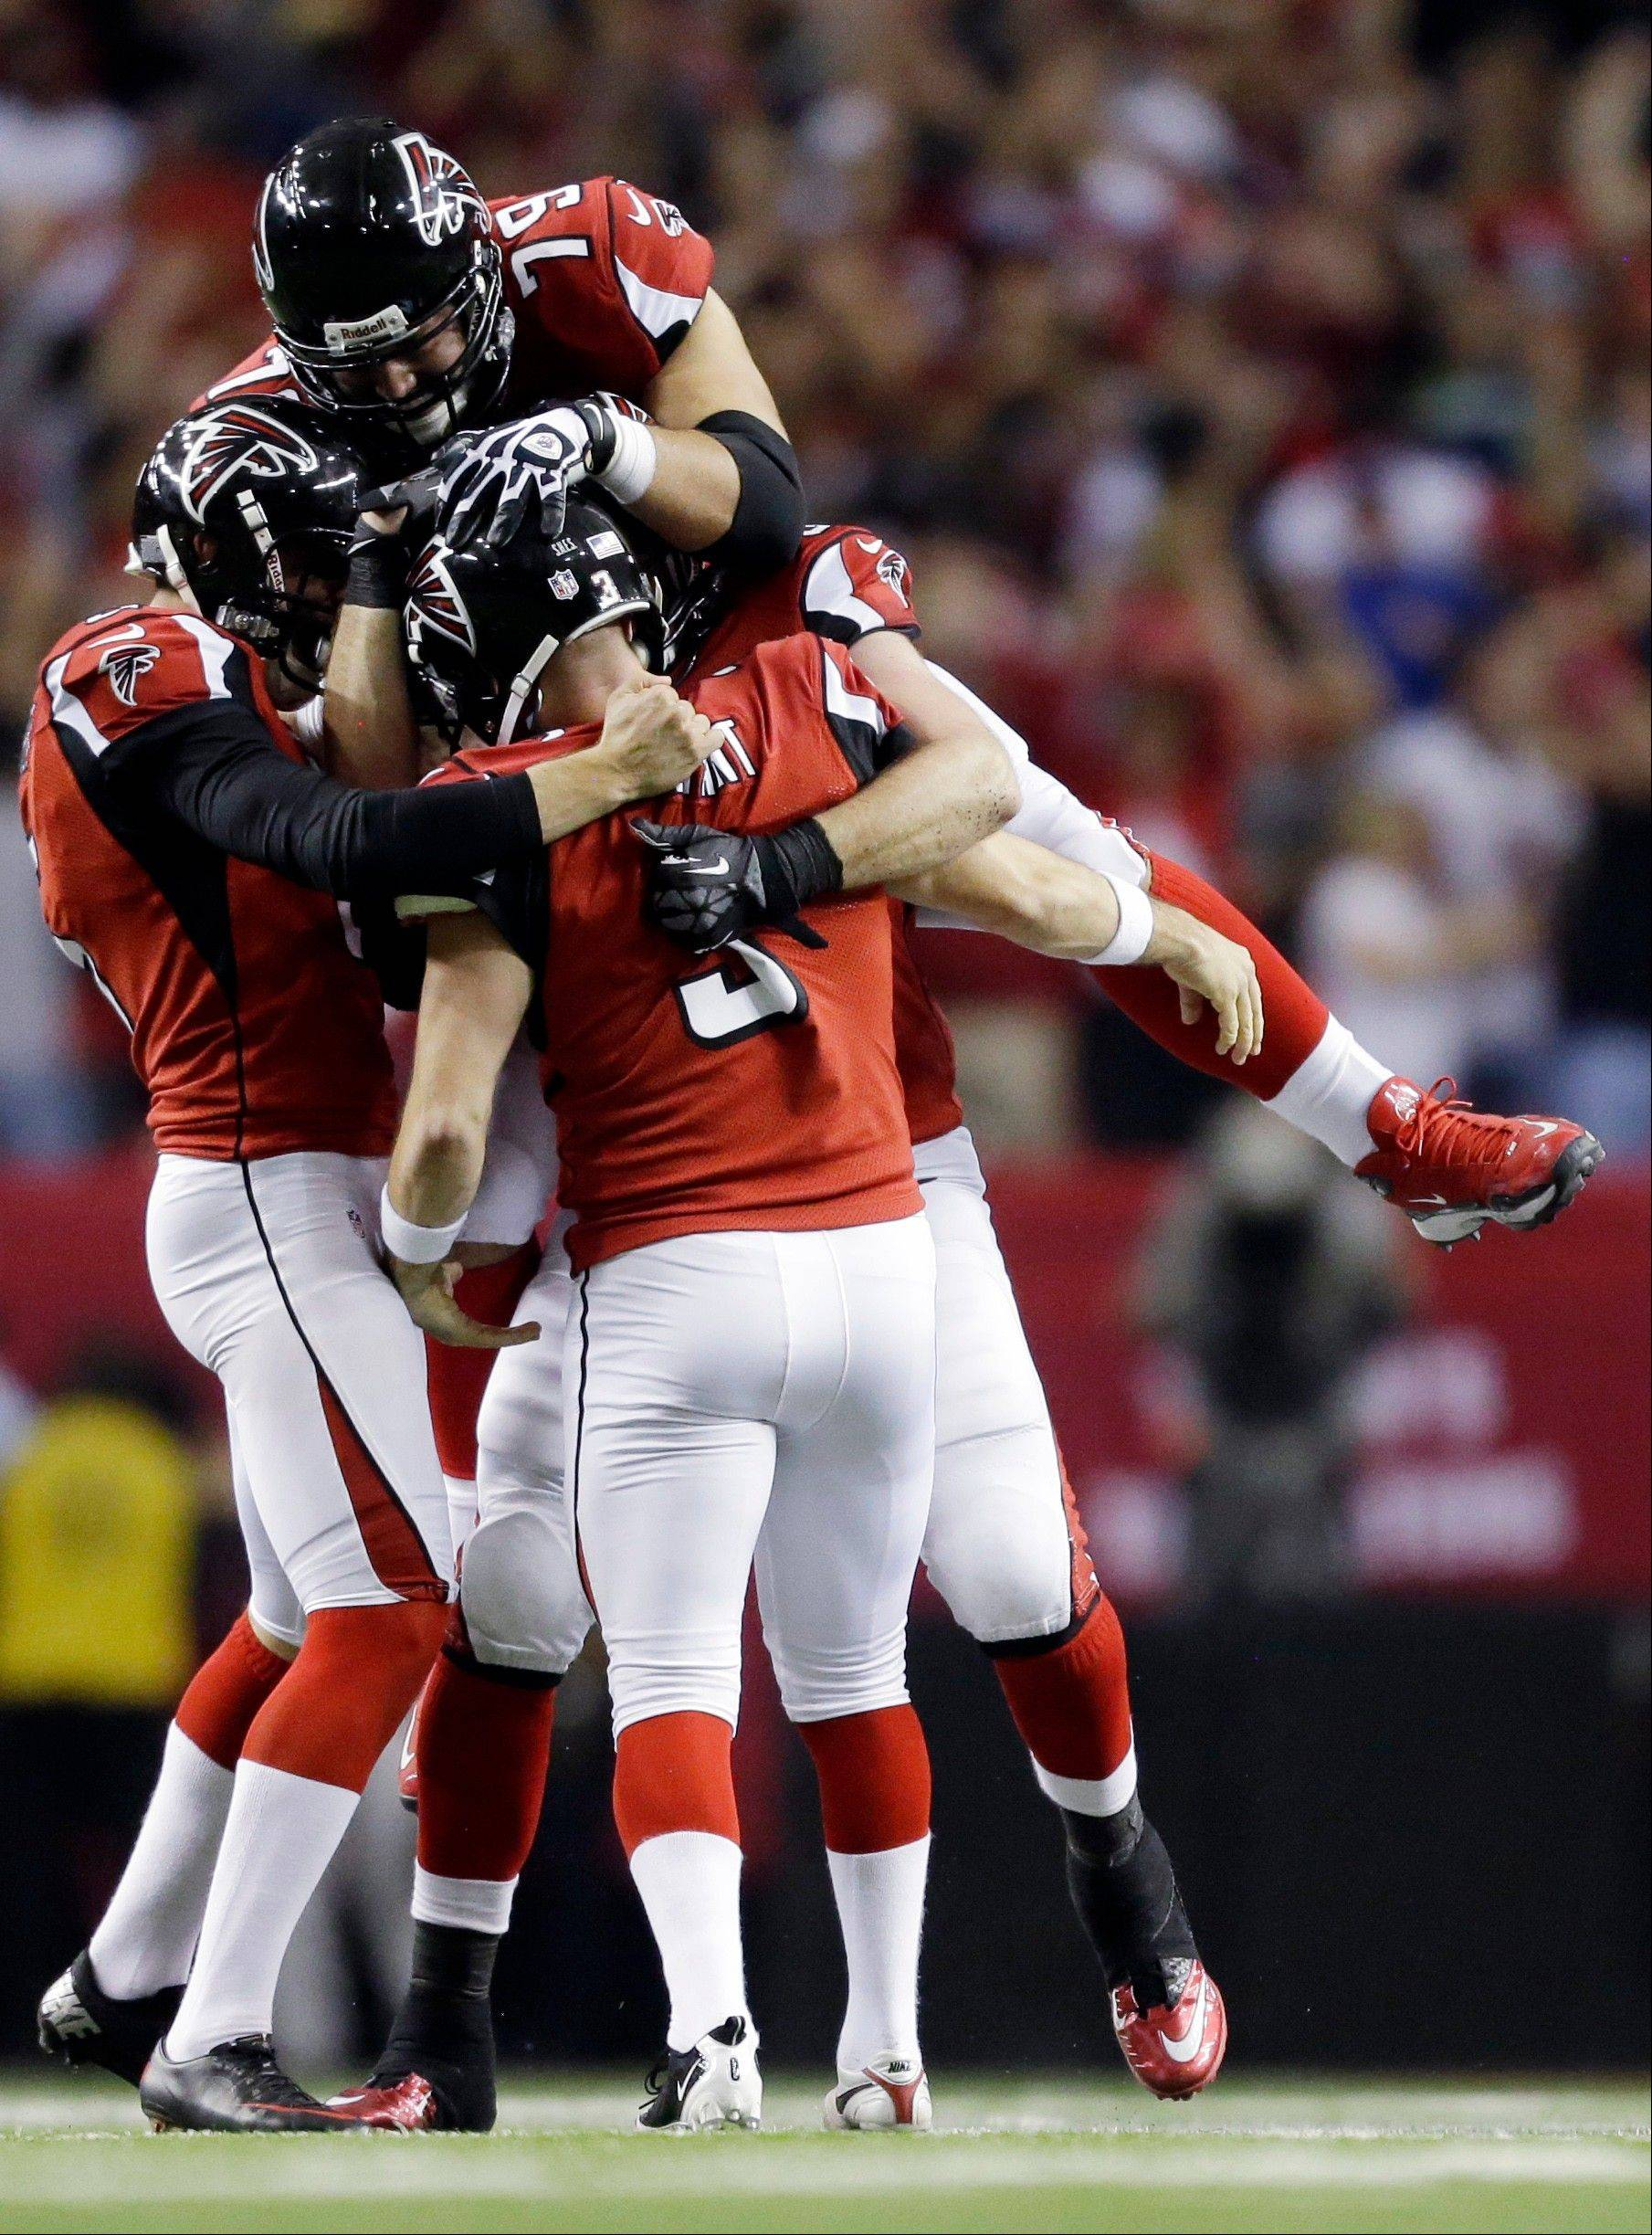 Atlanta Falcons kicker Matt Bryant is congratulated by teammates after making the game-winning field goal during the second half of an NFC divisional playoff NFL football game against the Seattle Seahawks Sunday, Jan. 13, 2013, in Atlanta. The Falcons won 30-28.